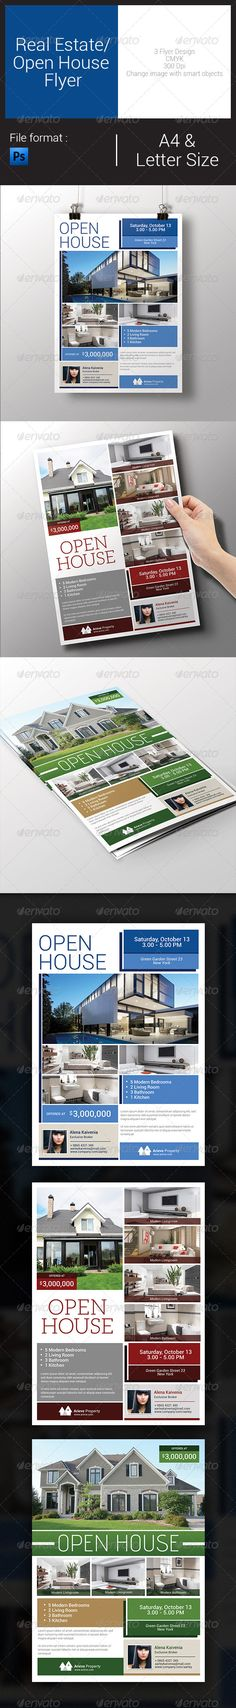 Real Estate / Open House Flyer